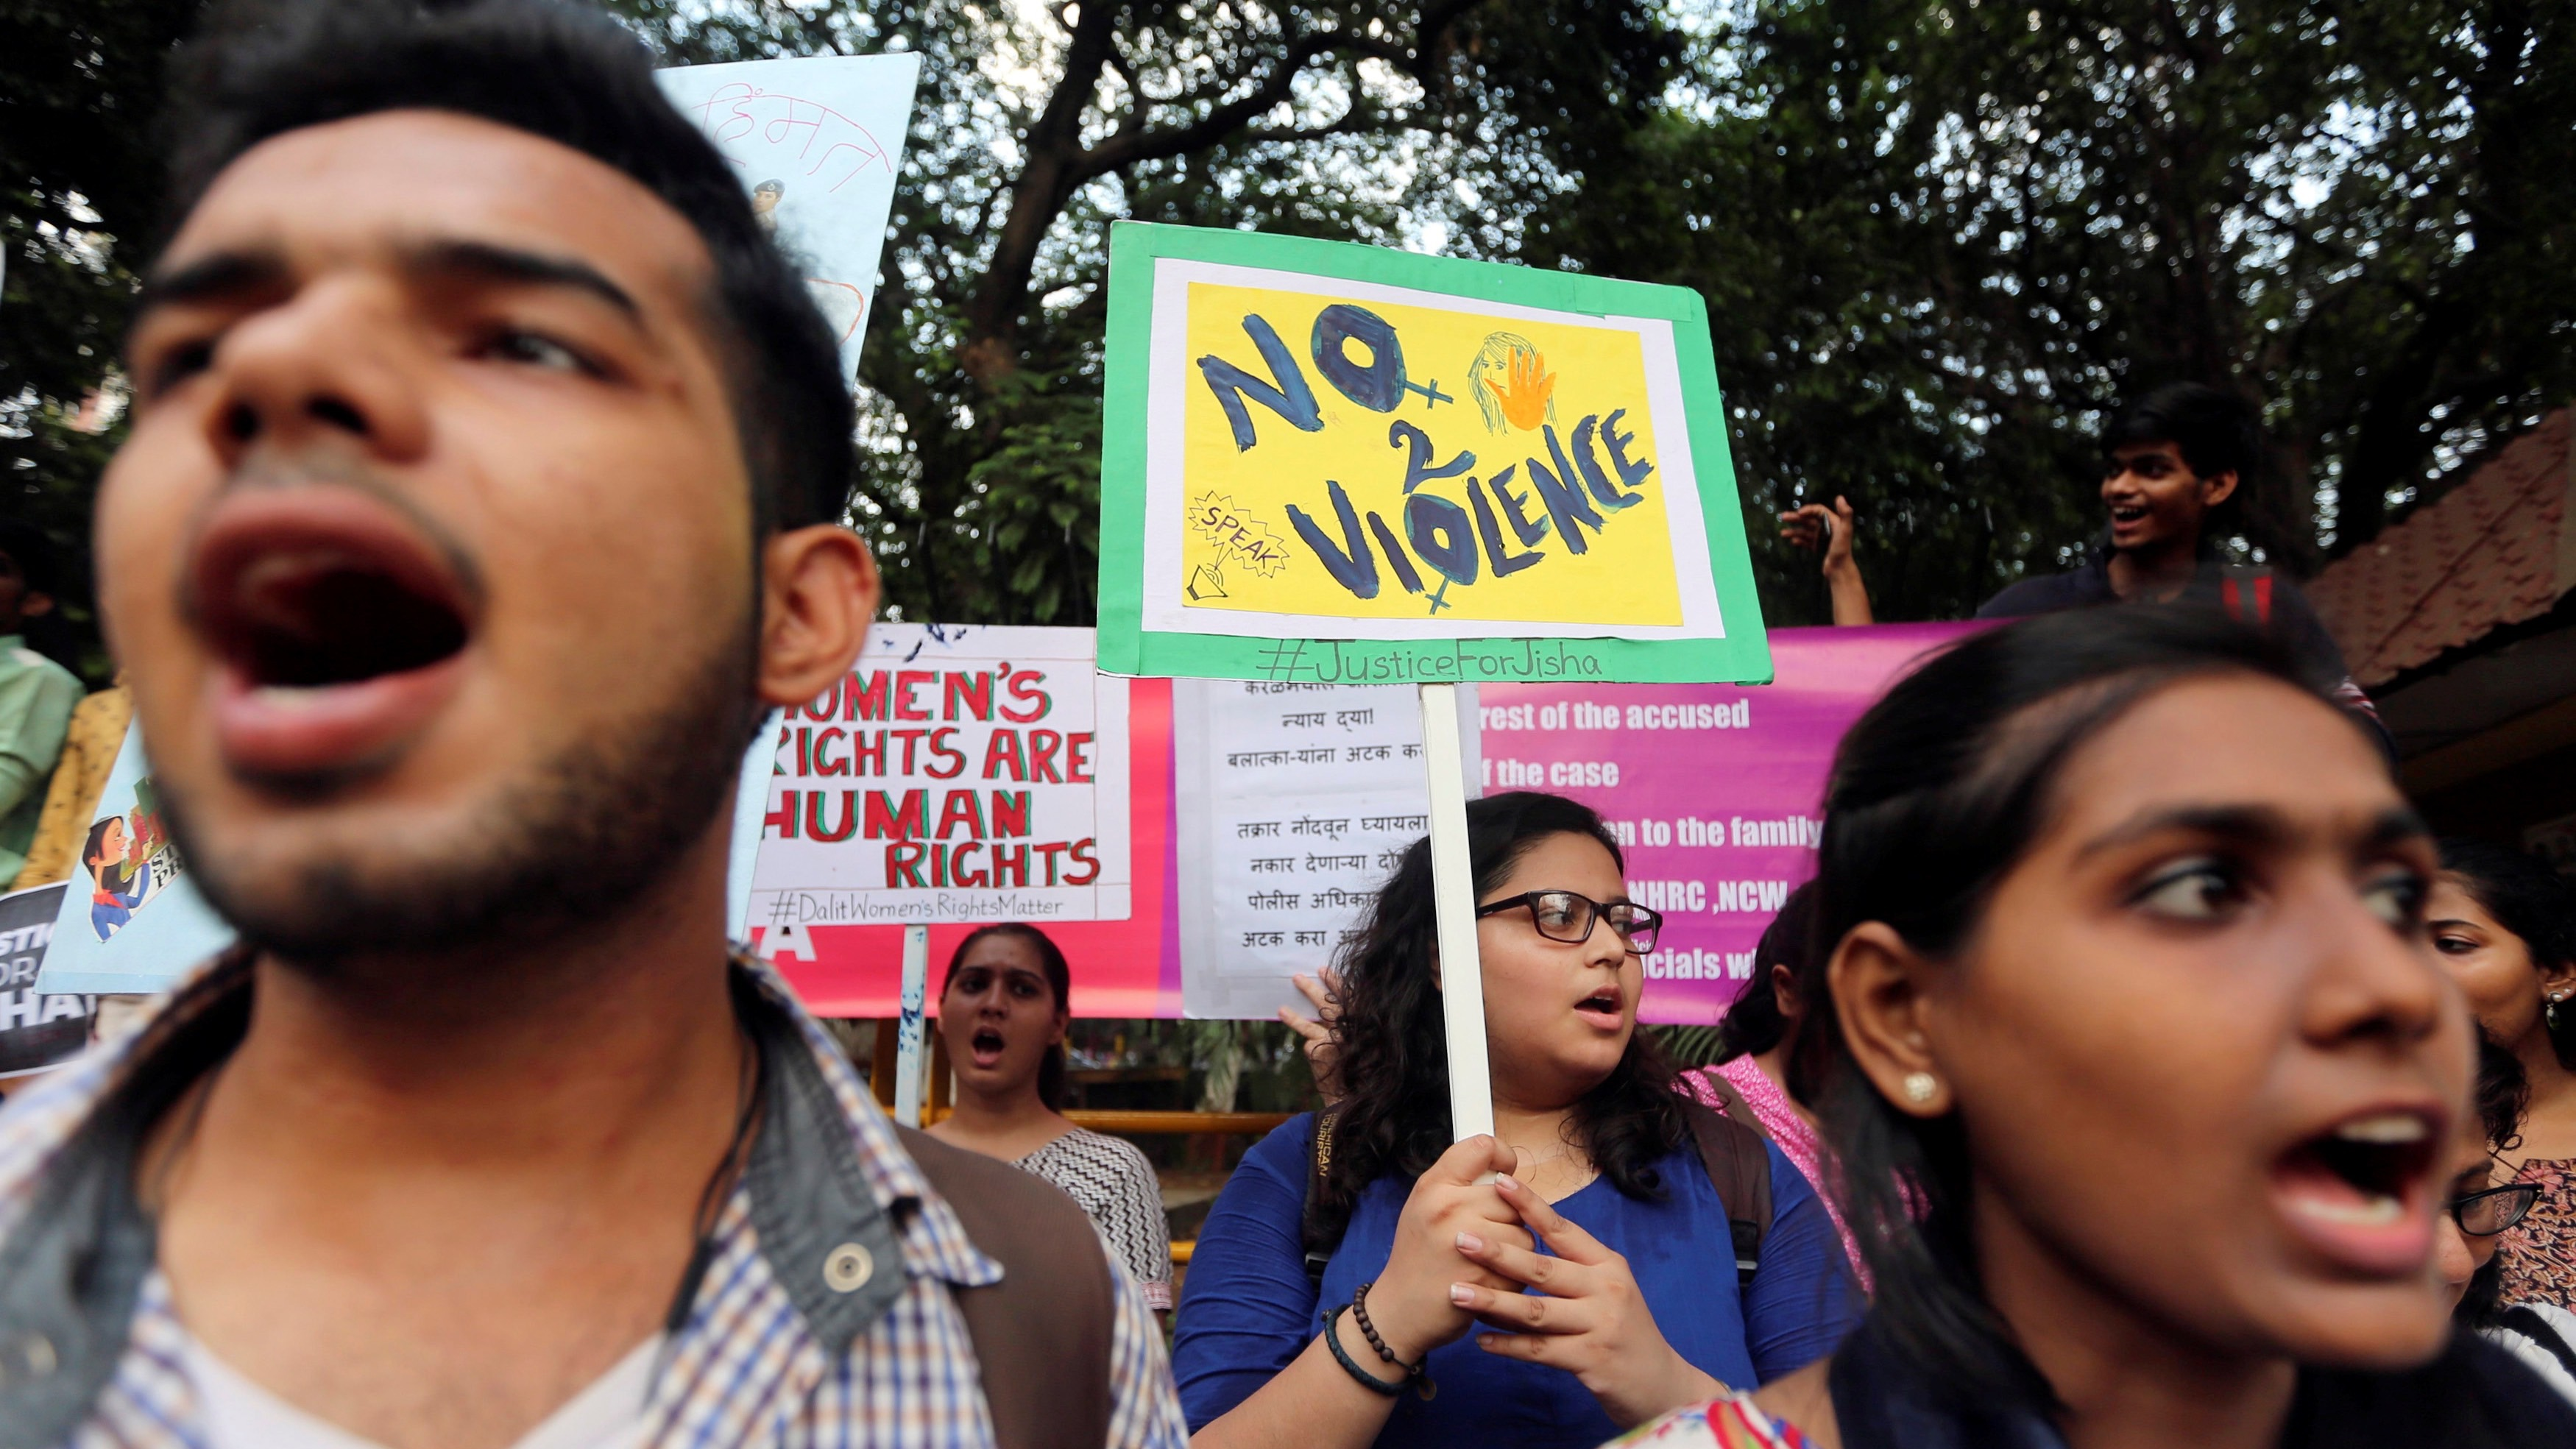 Demonstrators shout slogans during a protest against the rape and murder of a law student in the southern state of Kerala, in Mumbai, India, May 11, 2016. Authorities had released a sketch of a suspect and said they were looking for a man seen leaving the home of the 30-year-old law student. The case has evoked comparisons in the media with the gang rape and torture of a 23-year-old woman in New Delhi in 2012, which sparked nationwide protests. India toughened its anti-rape laws in response to the outcry following the 2012 murder, but rape, acid attacks, domestic violence and molestation are common. REUTERS/Shailesh Andrade - RTX2DU9K